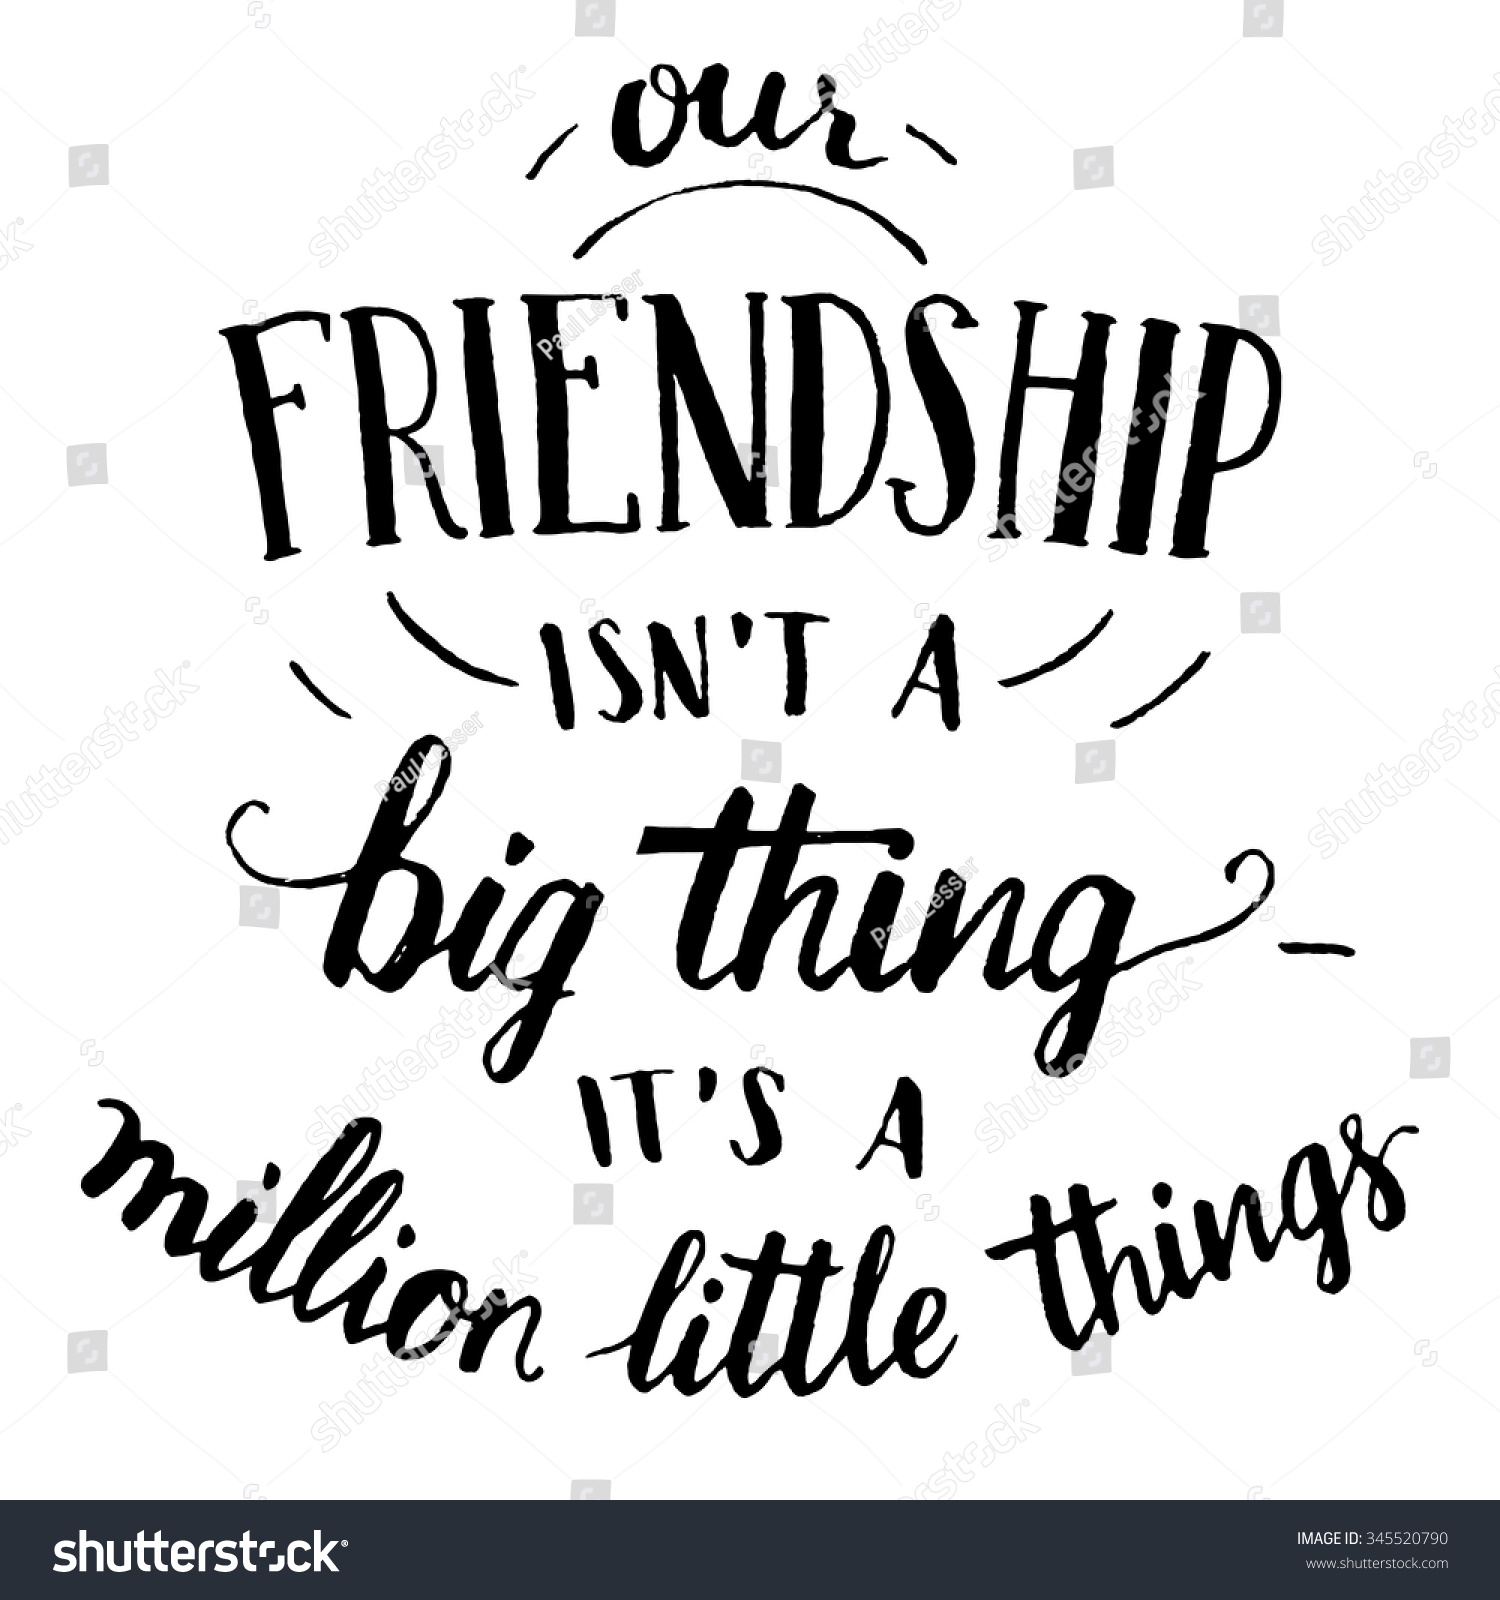 Our friendship isnt big thing million stock vector Images of calligraphy